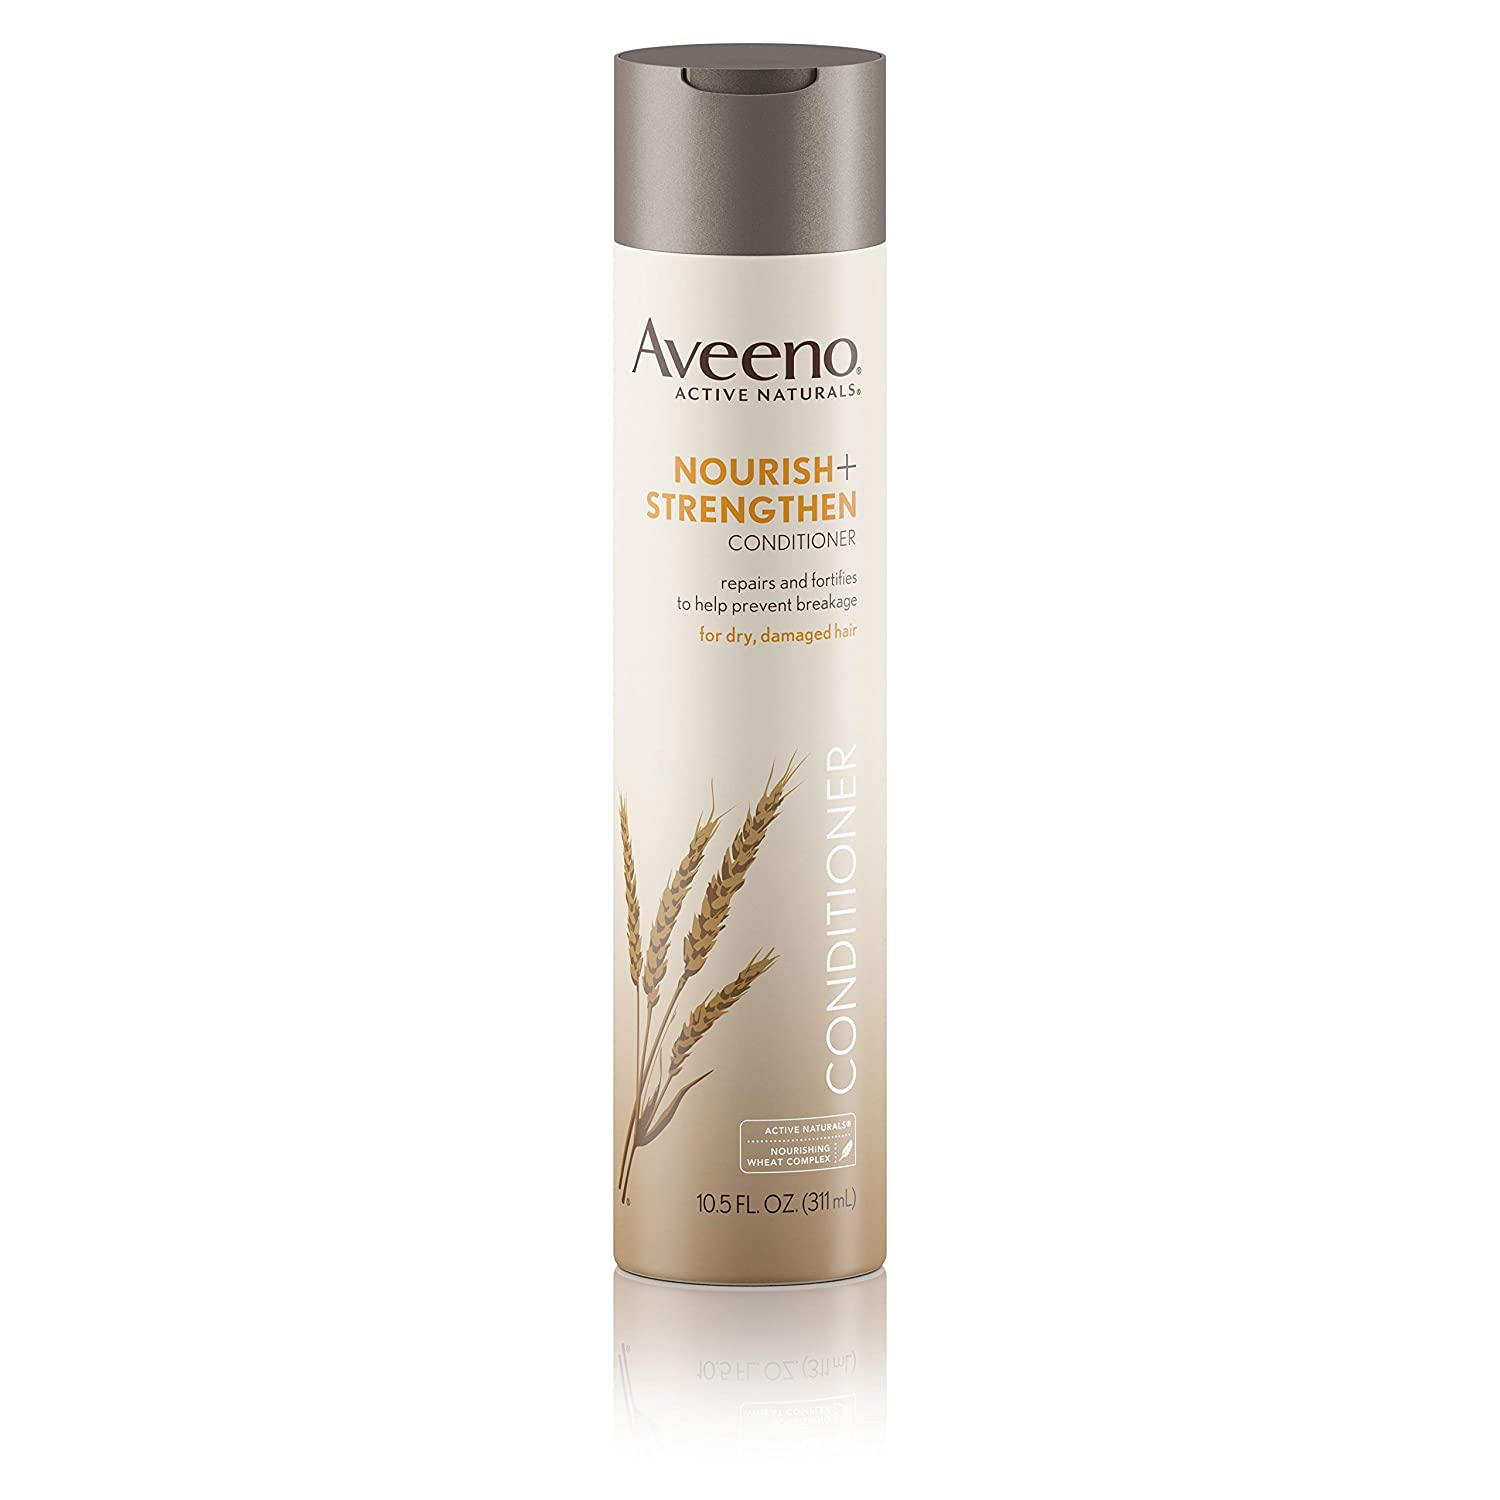 Aveeno Active Naturals Nourish + Strengthen Conditioner